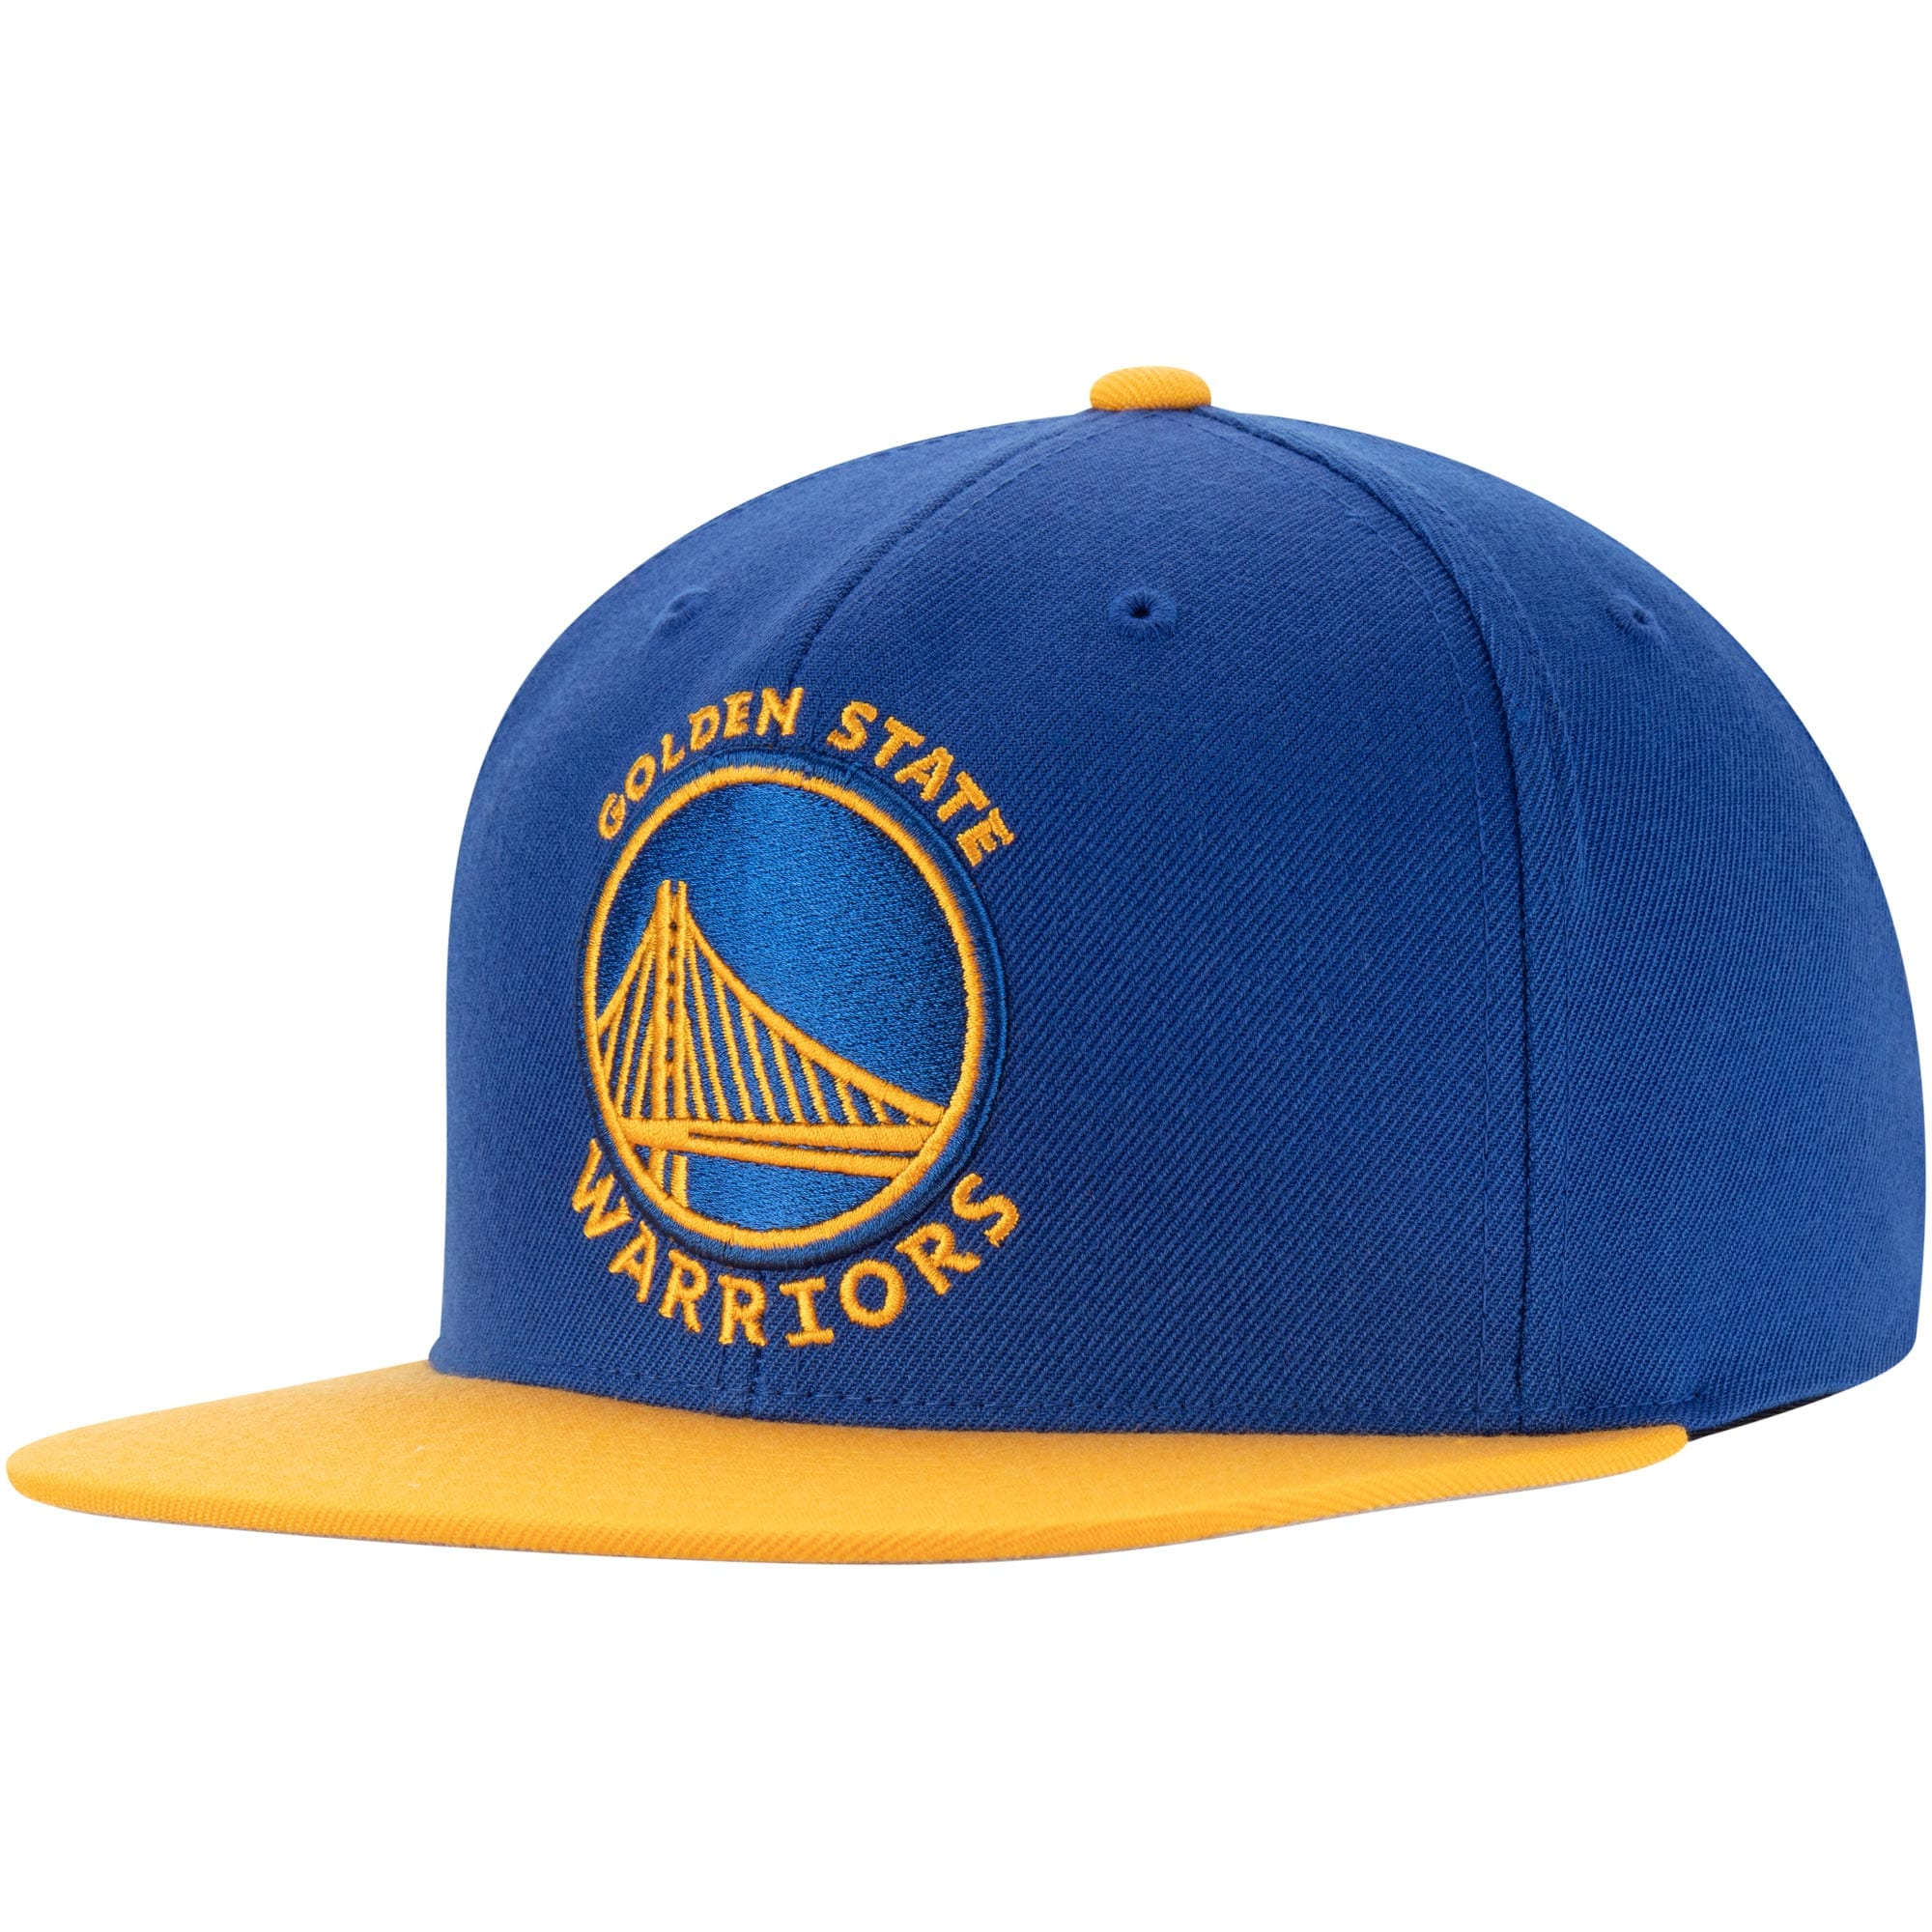 Golden State Warriors Mitchell & Ness Two-Tone Wool Snapback Hat - Royal/Gold